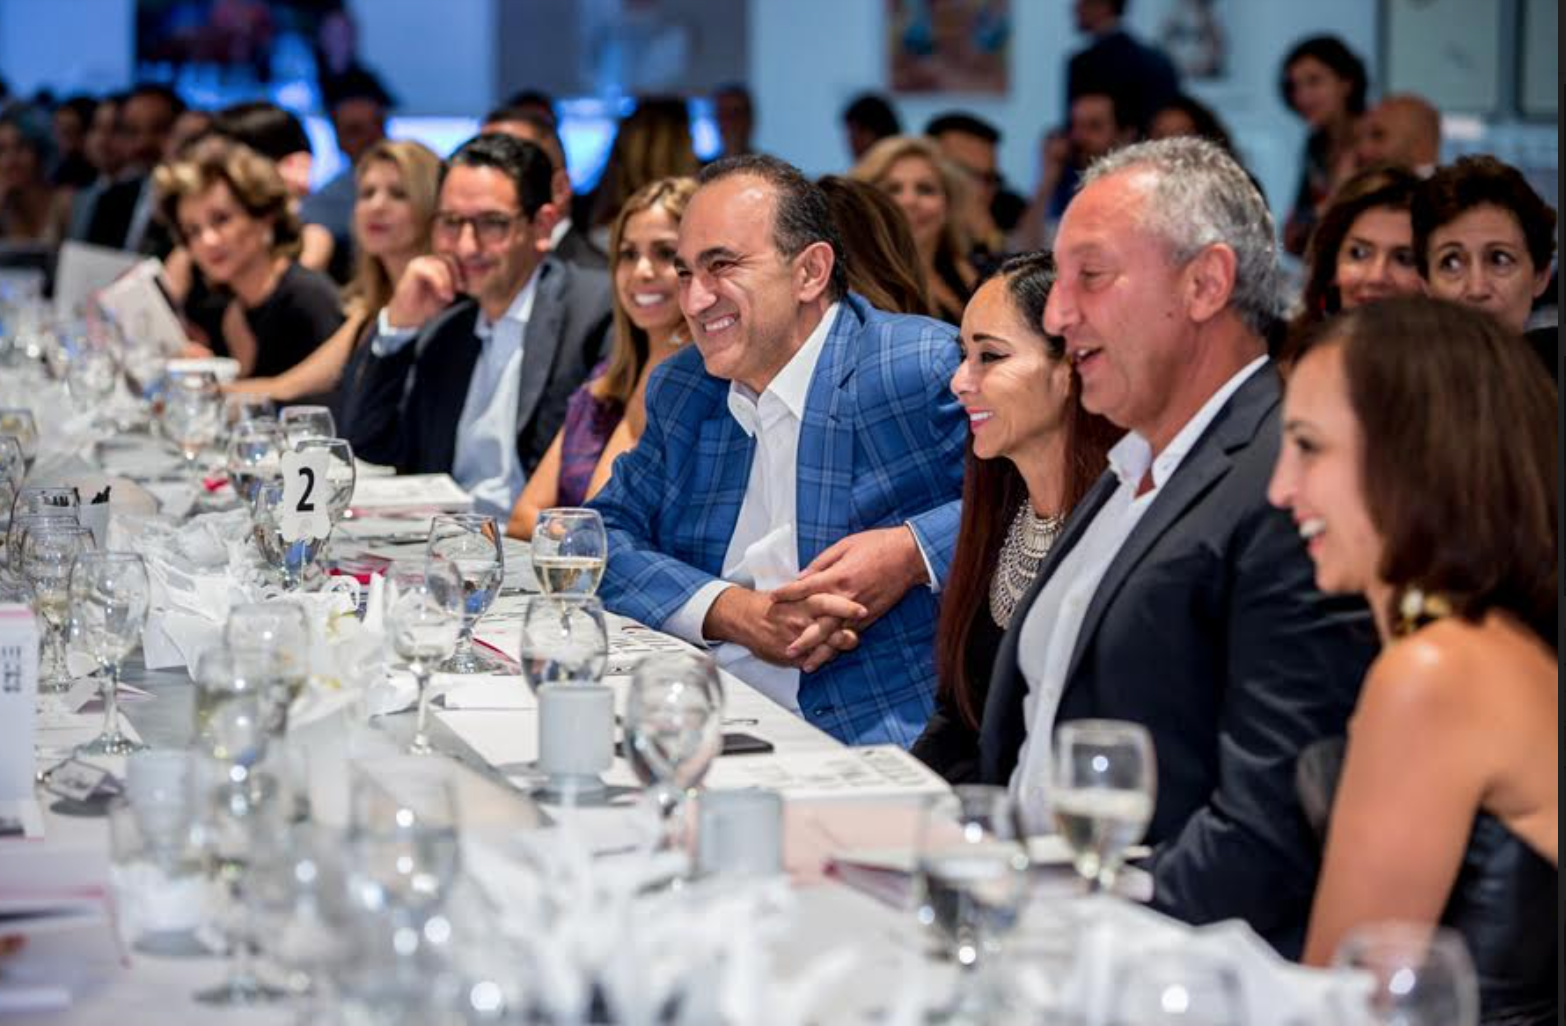 Dinner guests at MOP auction, Bonhams